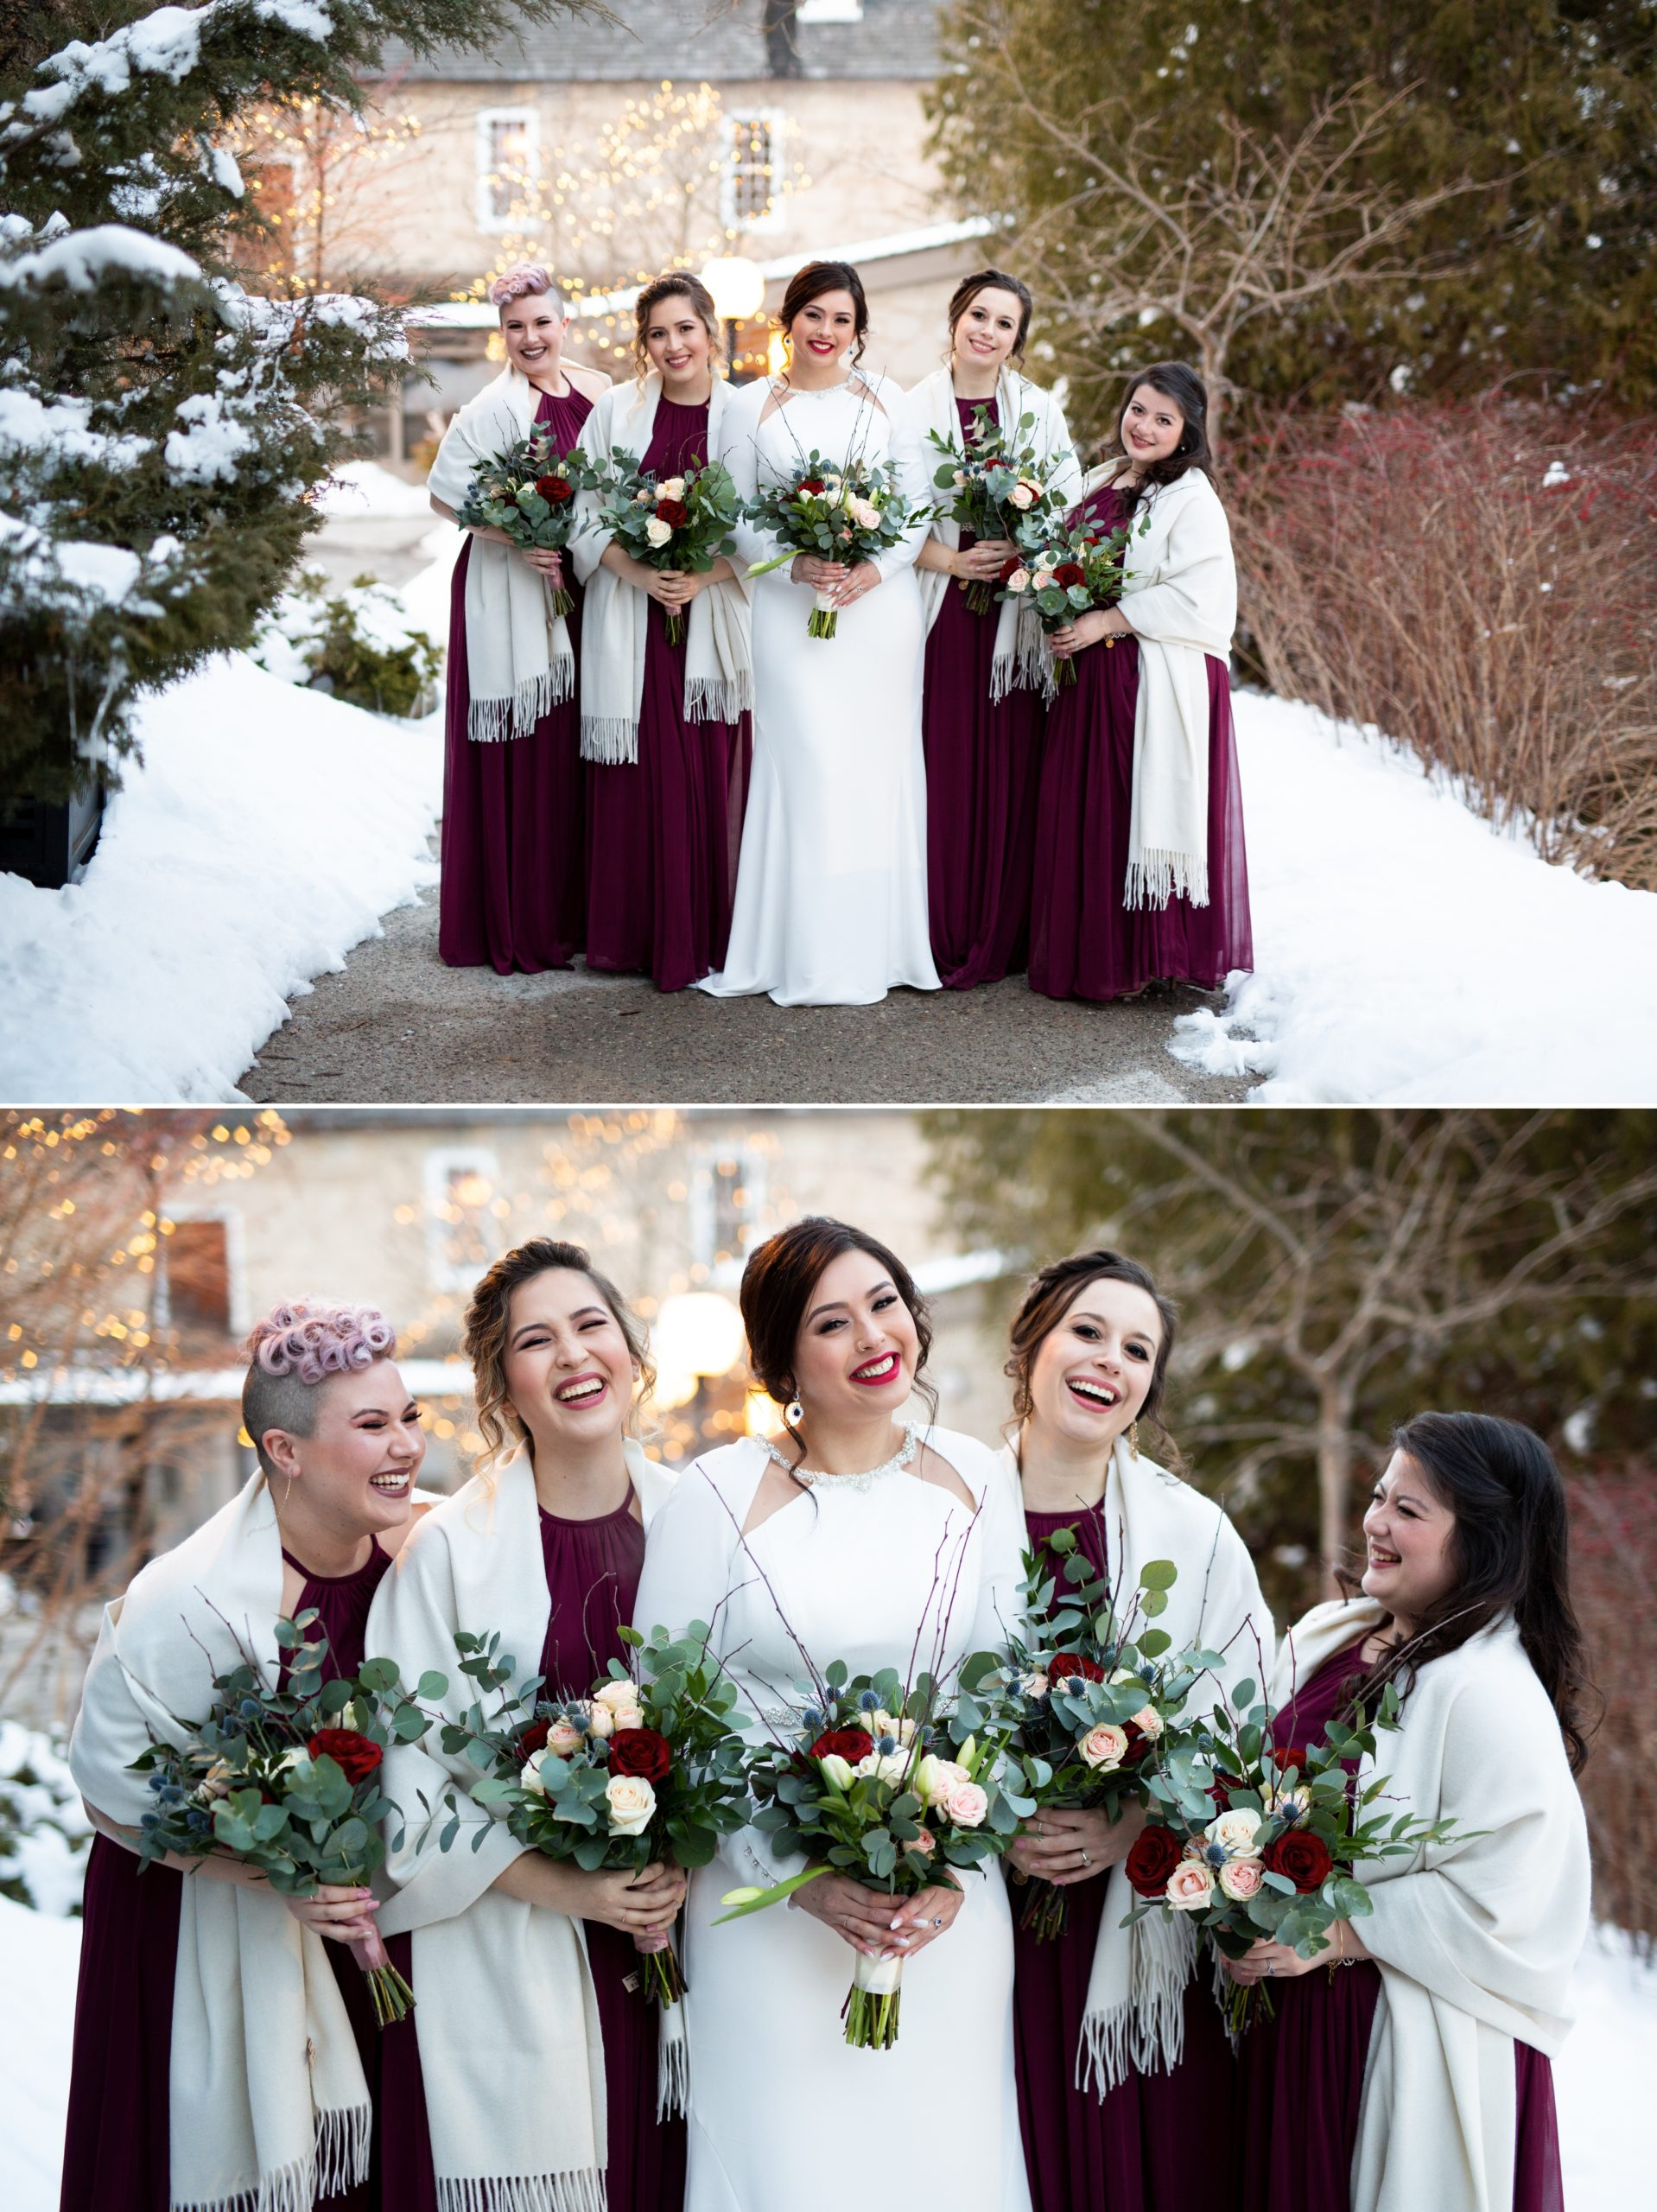 Bridesmaids Reception Ancaster Mill Winter Wedding, Ancaster, Hamilton, Zsuzsi Pal Photography